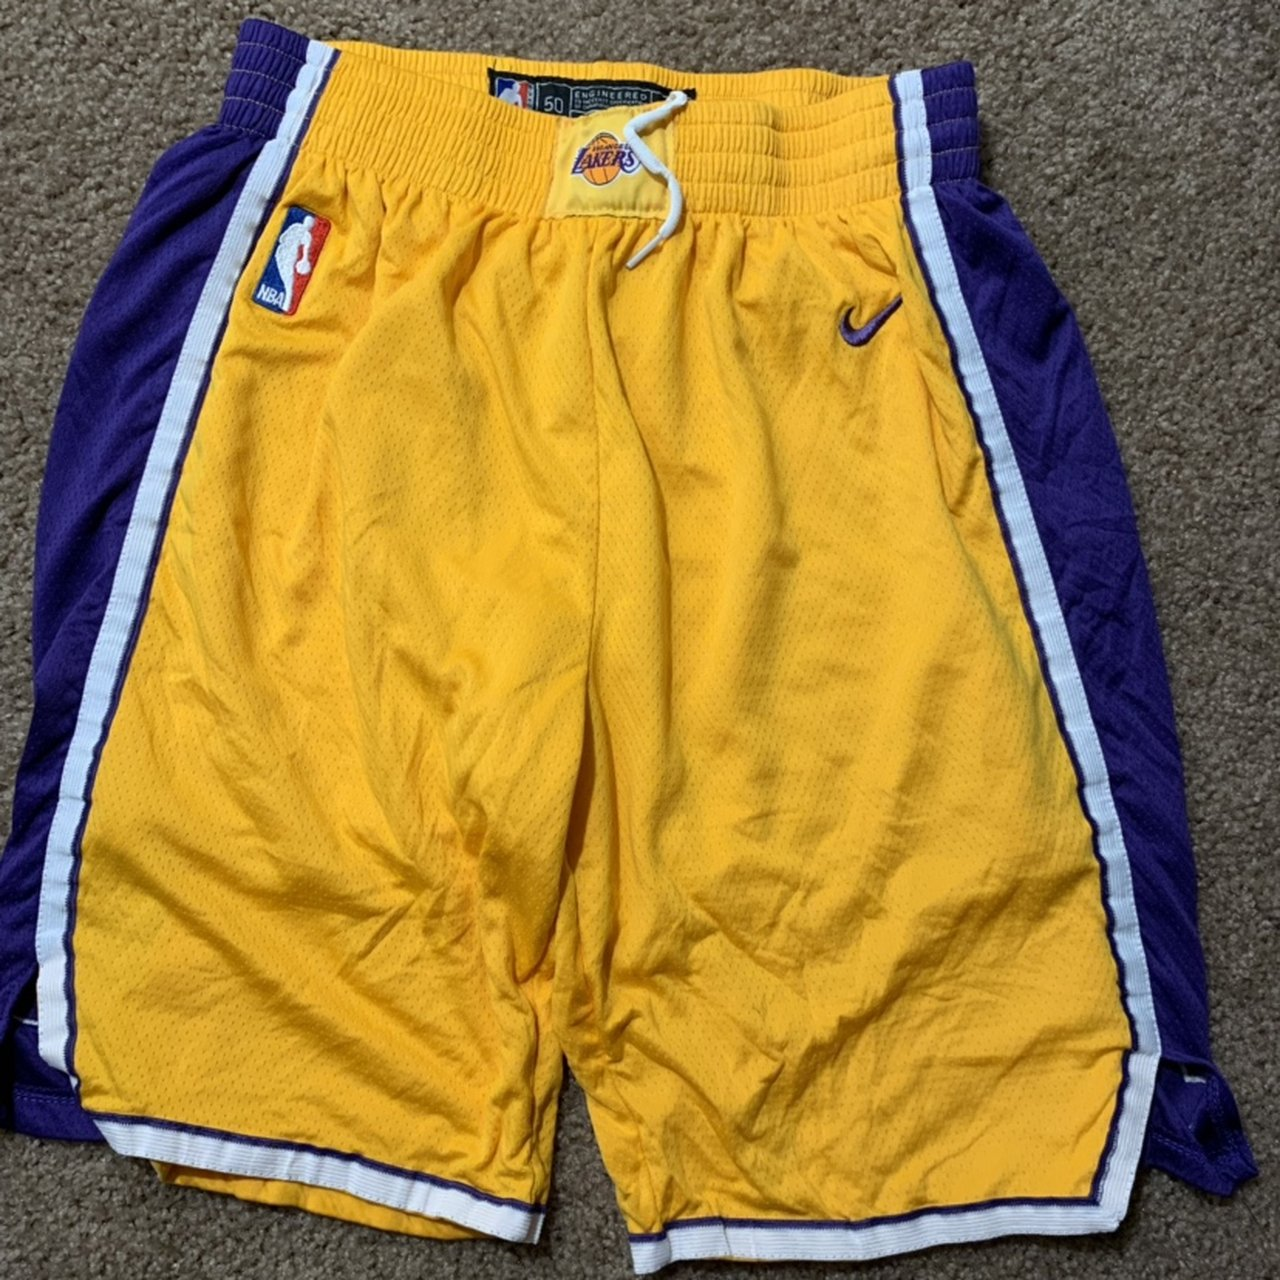 54e13aa2ee @wokenstar. 10 days ago. Perris, United States. Los Angeles Lakers Shorts